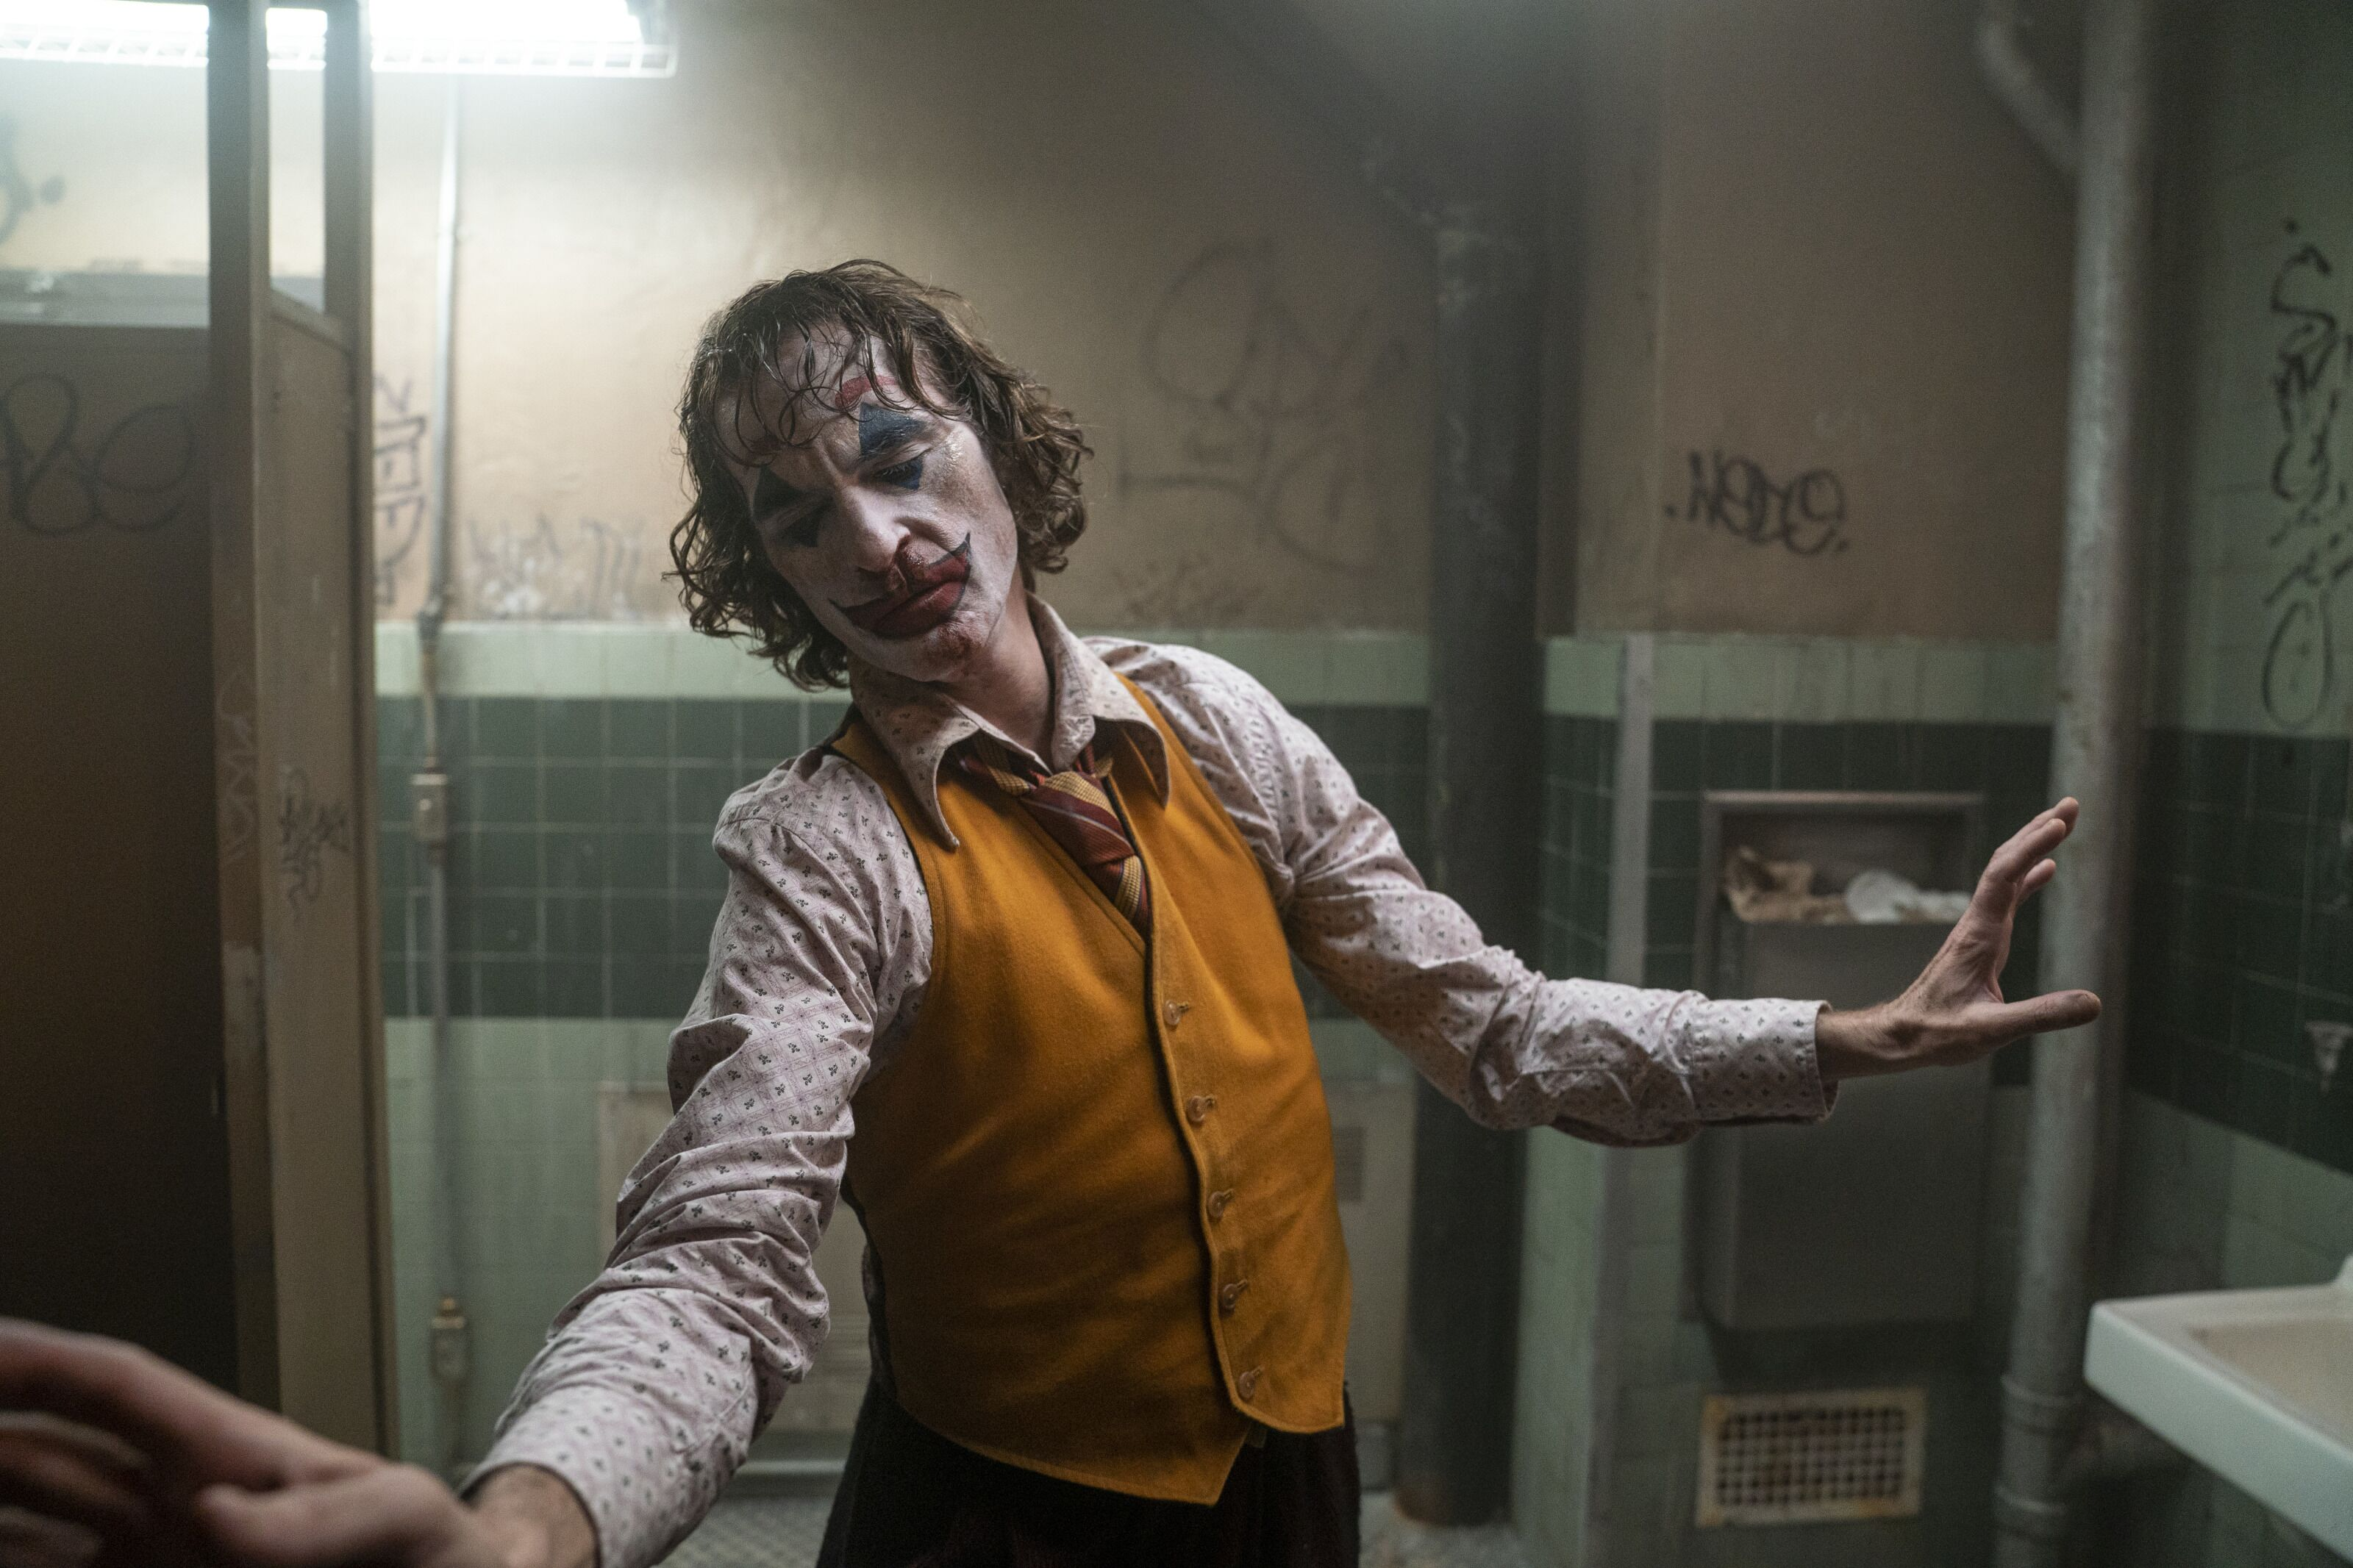 Joker is the most profitable comic book movie of all time